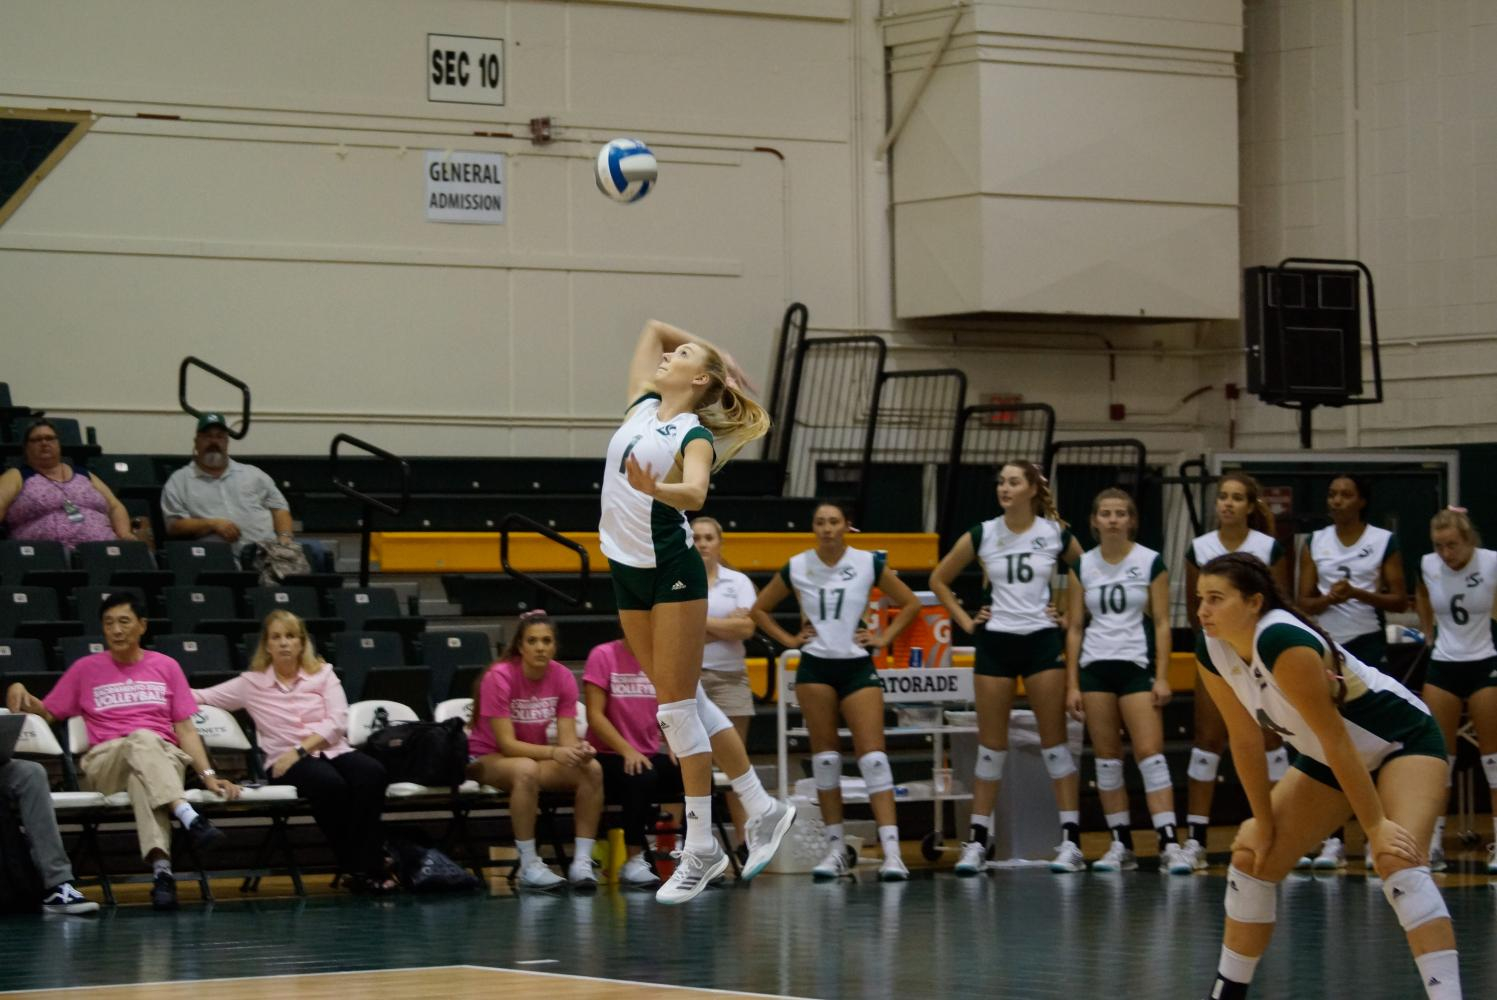 Sacramento State senior setter Kennedy Kurtz serves the ball against the University of San Francisco Sept. 12 at Colberg Court. Sac State defeated San Francisco in four sets, 3-1.